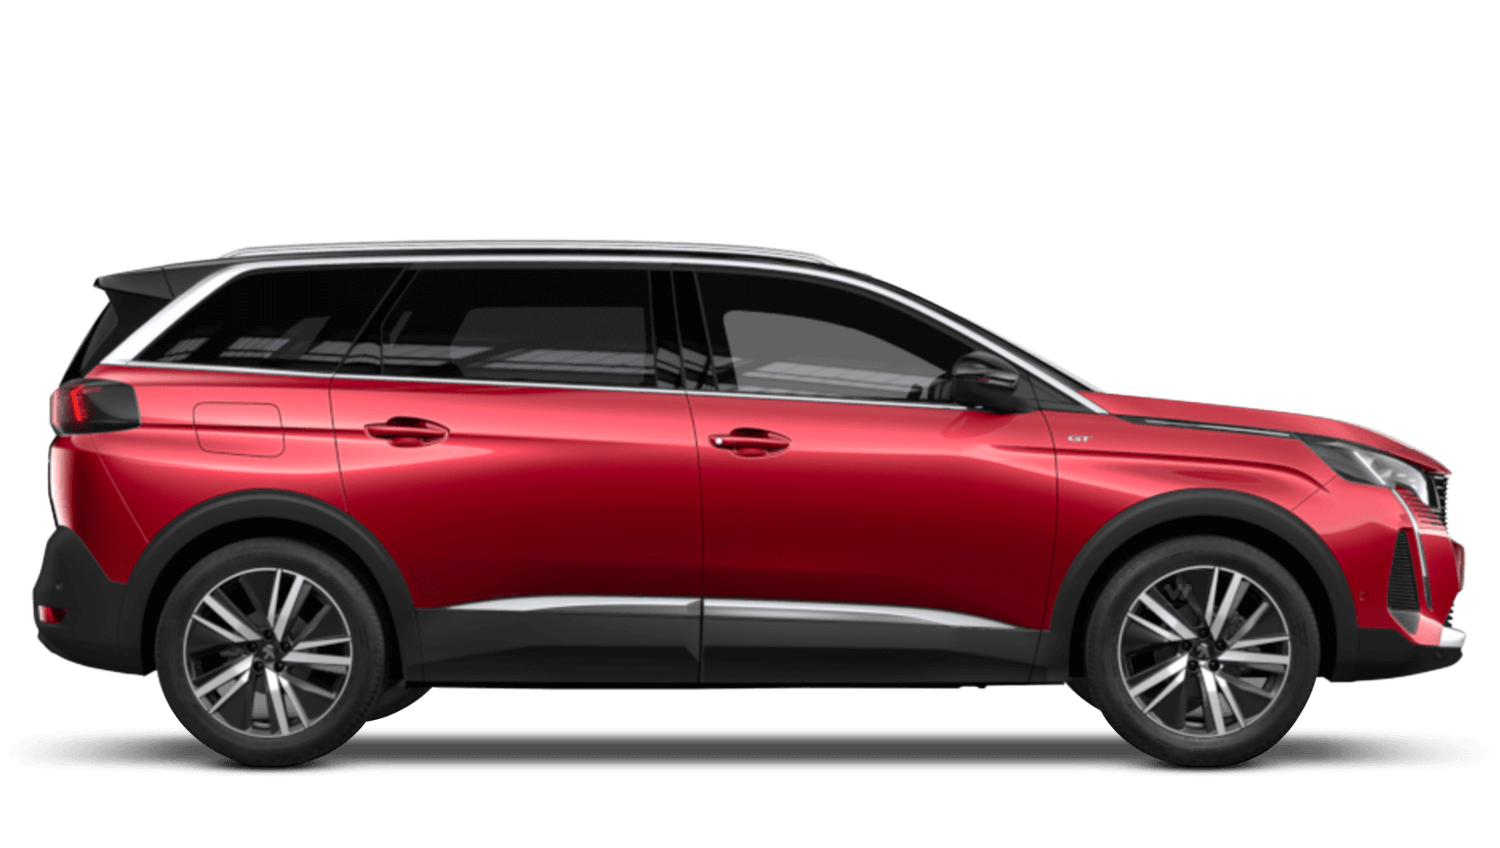 Ultimate Red New Peugeot 5008 SUV